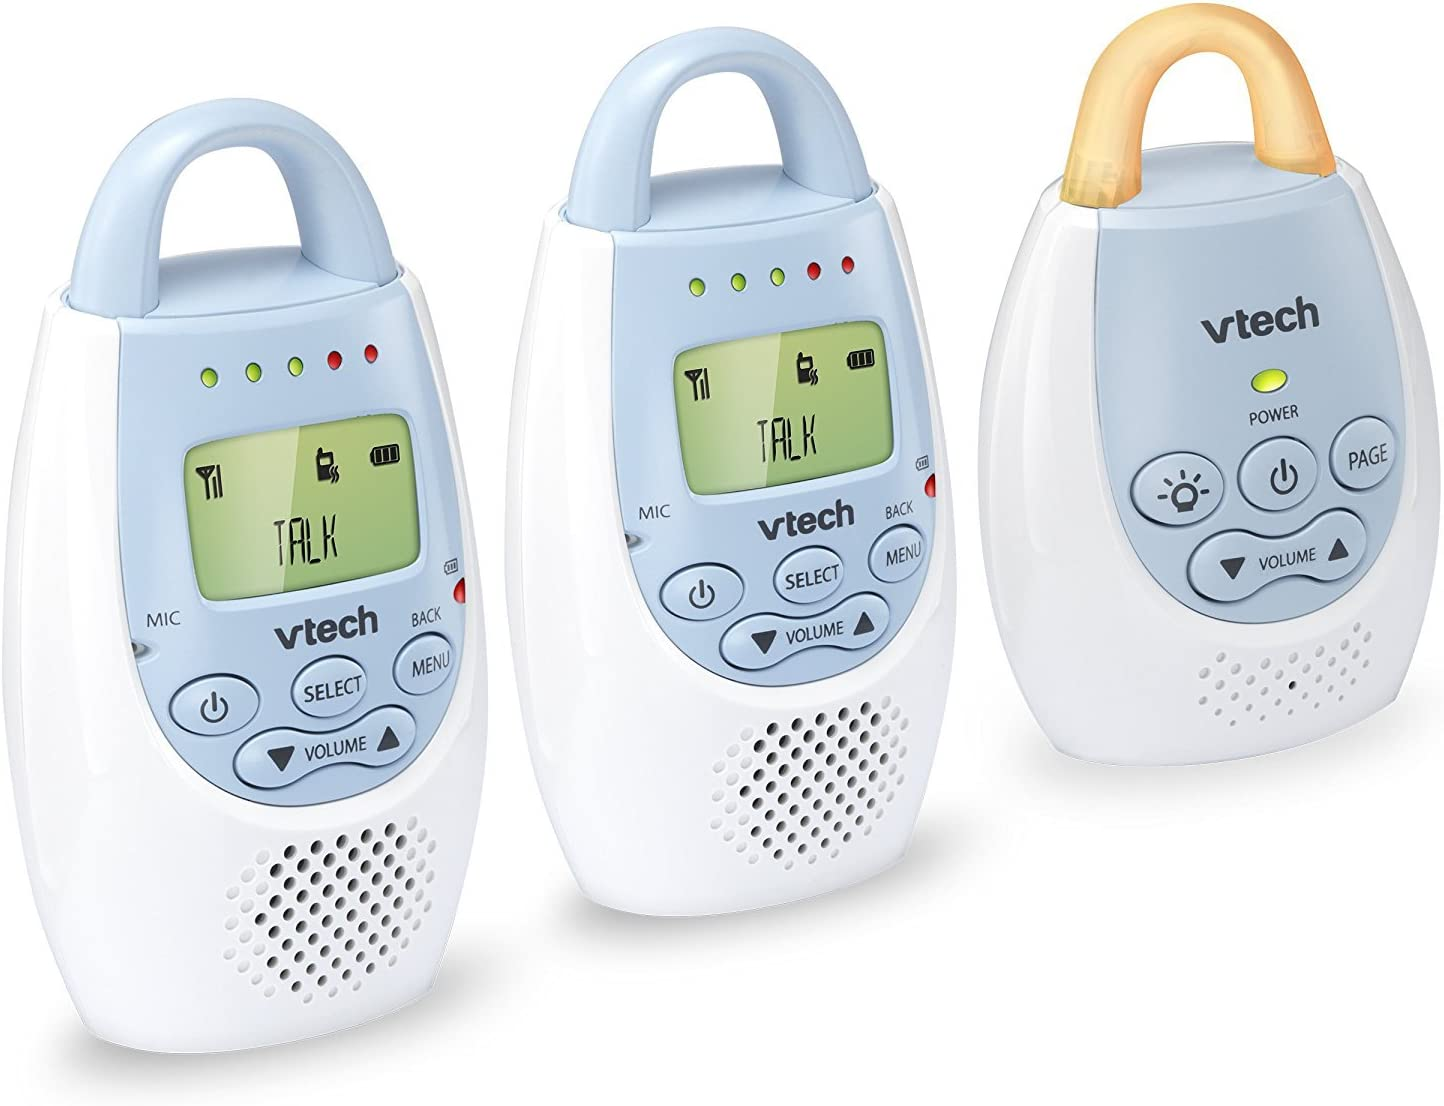 VTech BA72212BL Blue Audio Baby Monitor with up to 1,000 ft of Range, Vibrating Sound-Alert, Talk Back Intercom Night Light Loop with 2 Parent Units